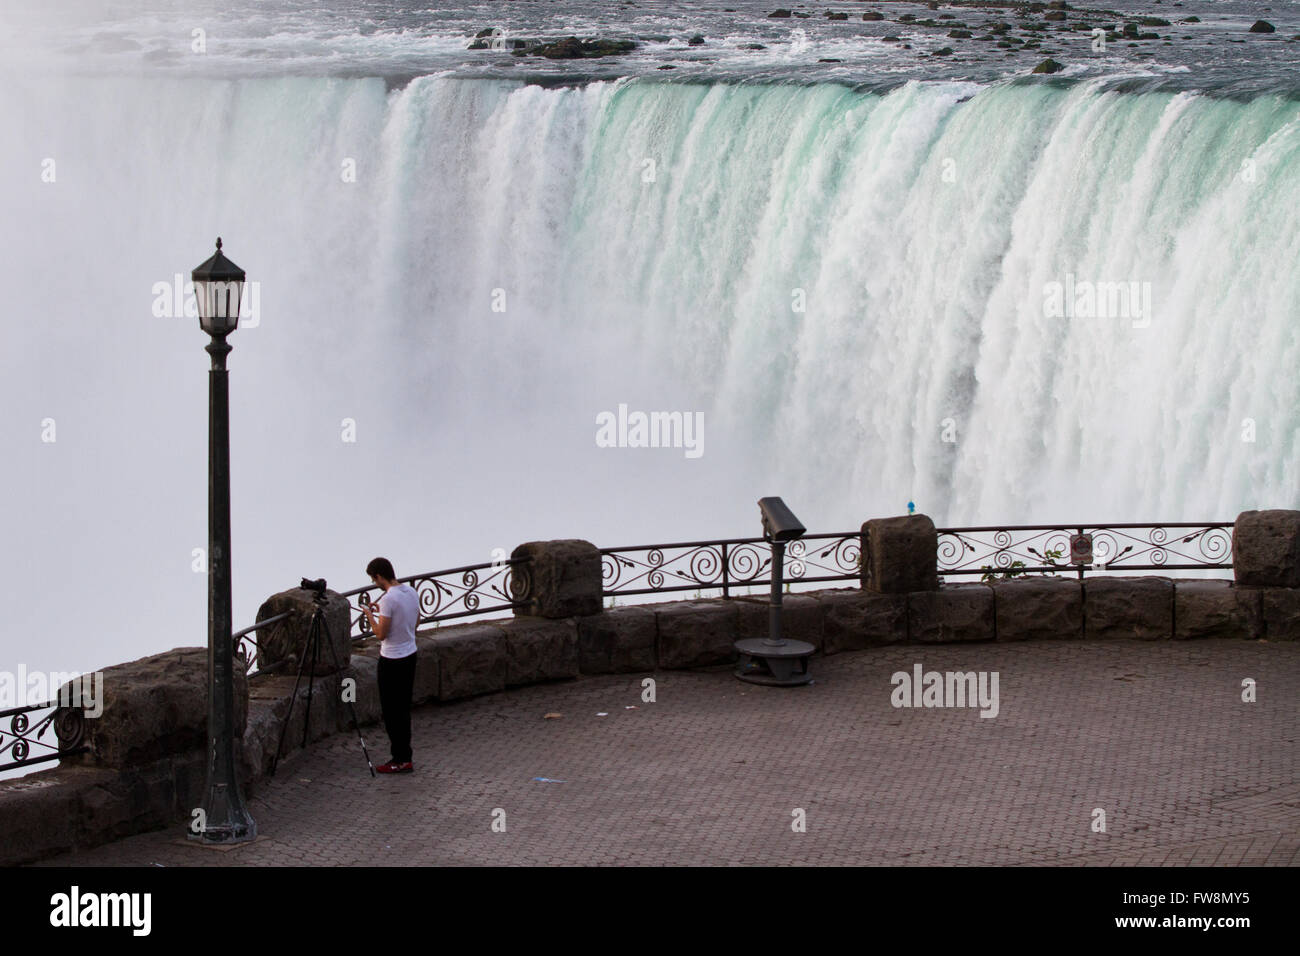 A tourist takes pictures of the Canadian Horseshoe falls early in the morning in Niagara Falls Ont., on Tuesday - Stock Image